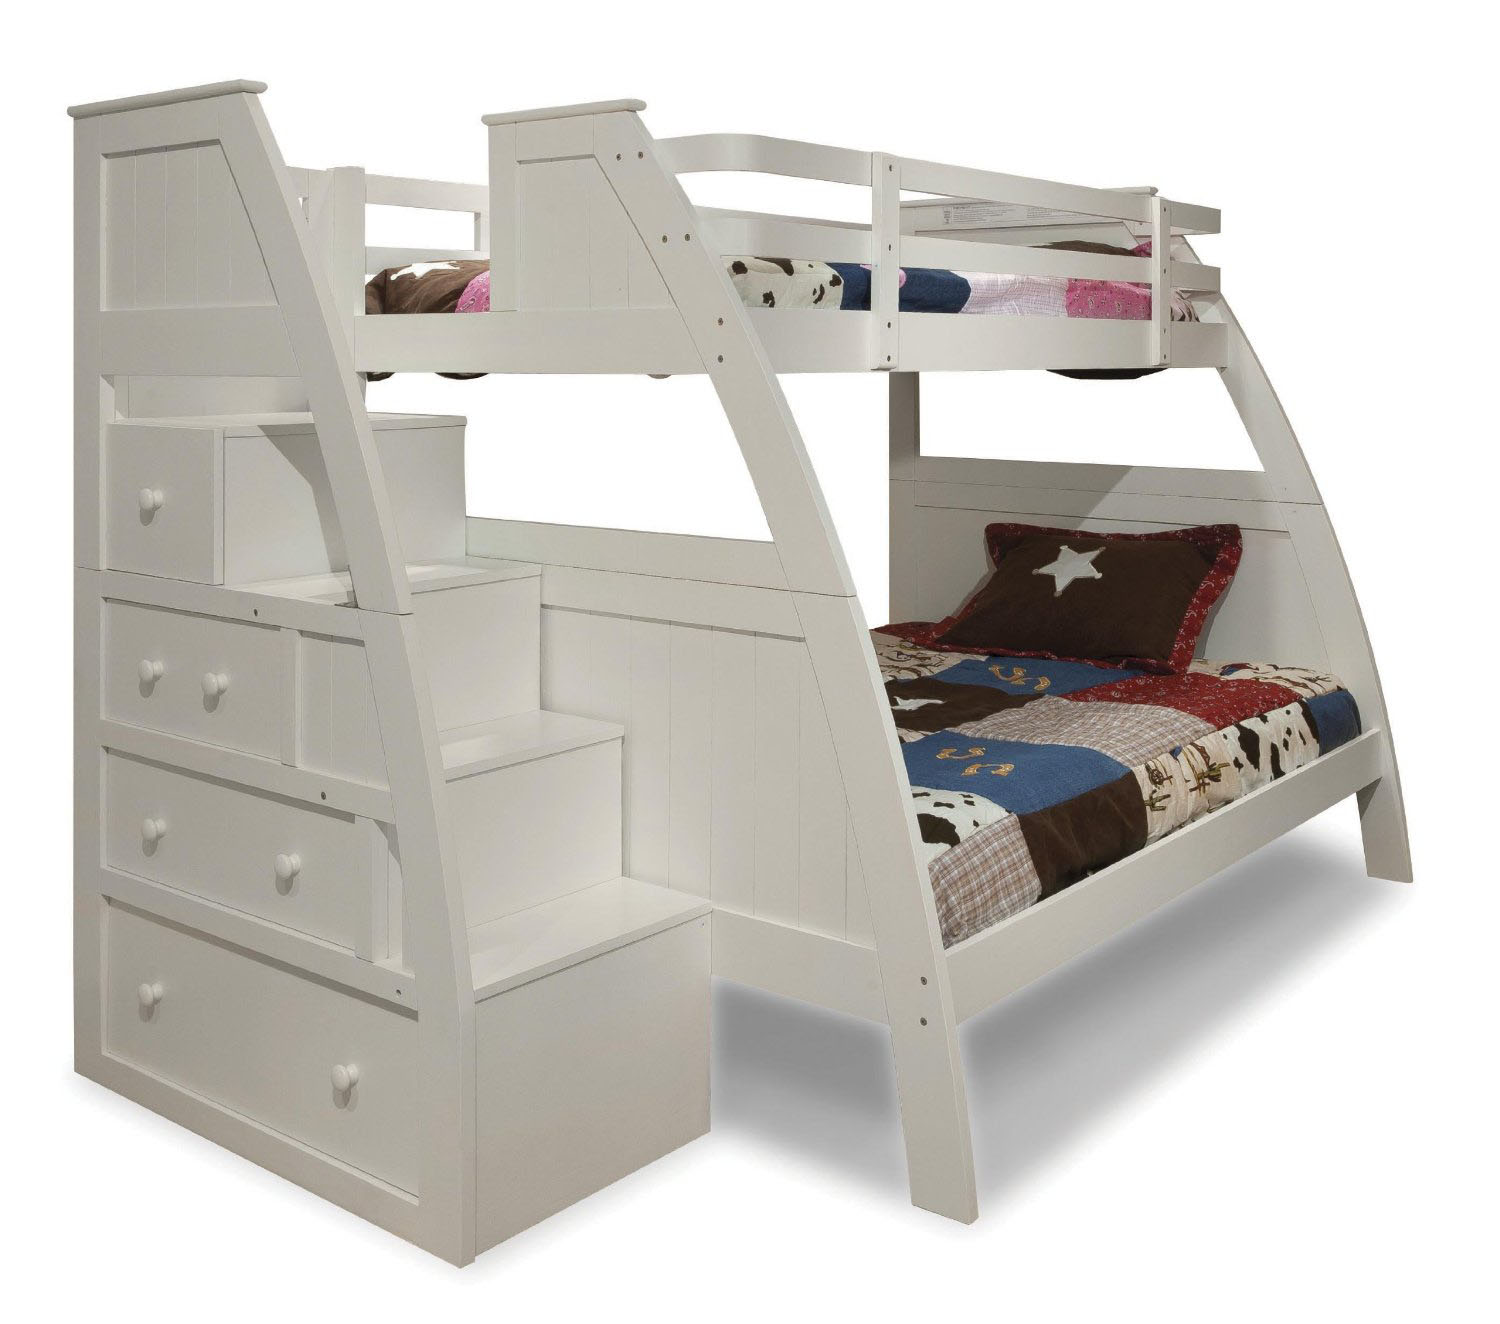 Permalink to free bunk bed plans pdf